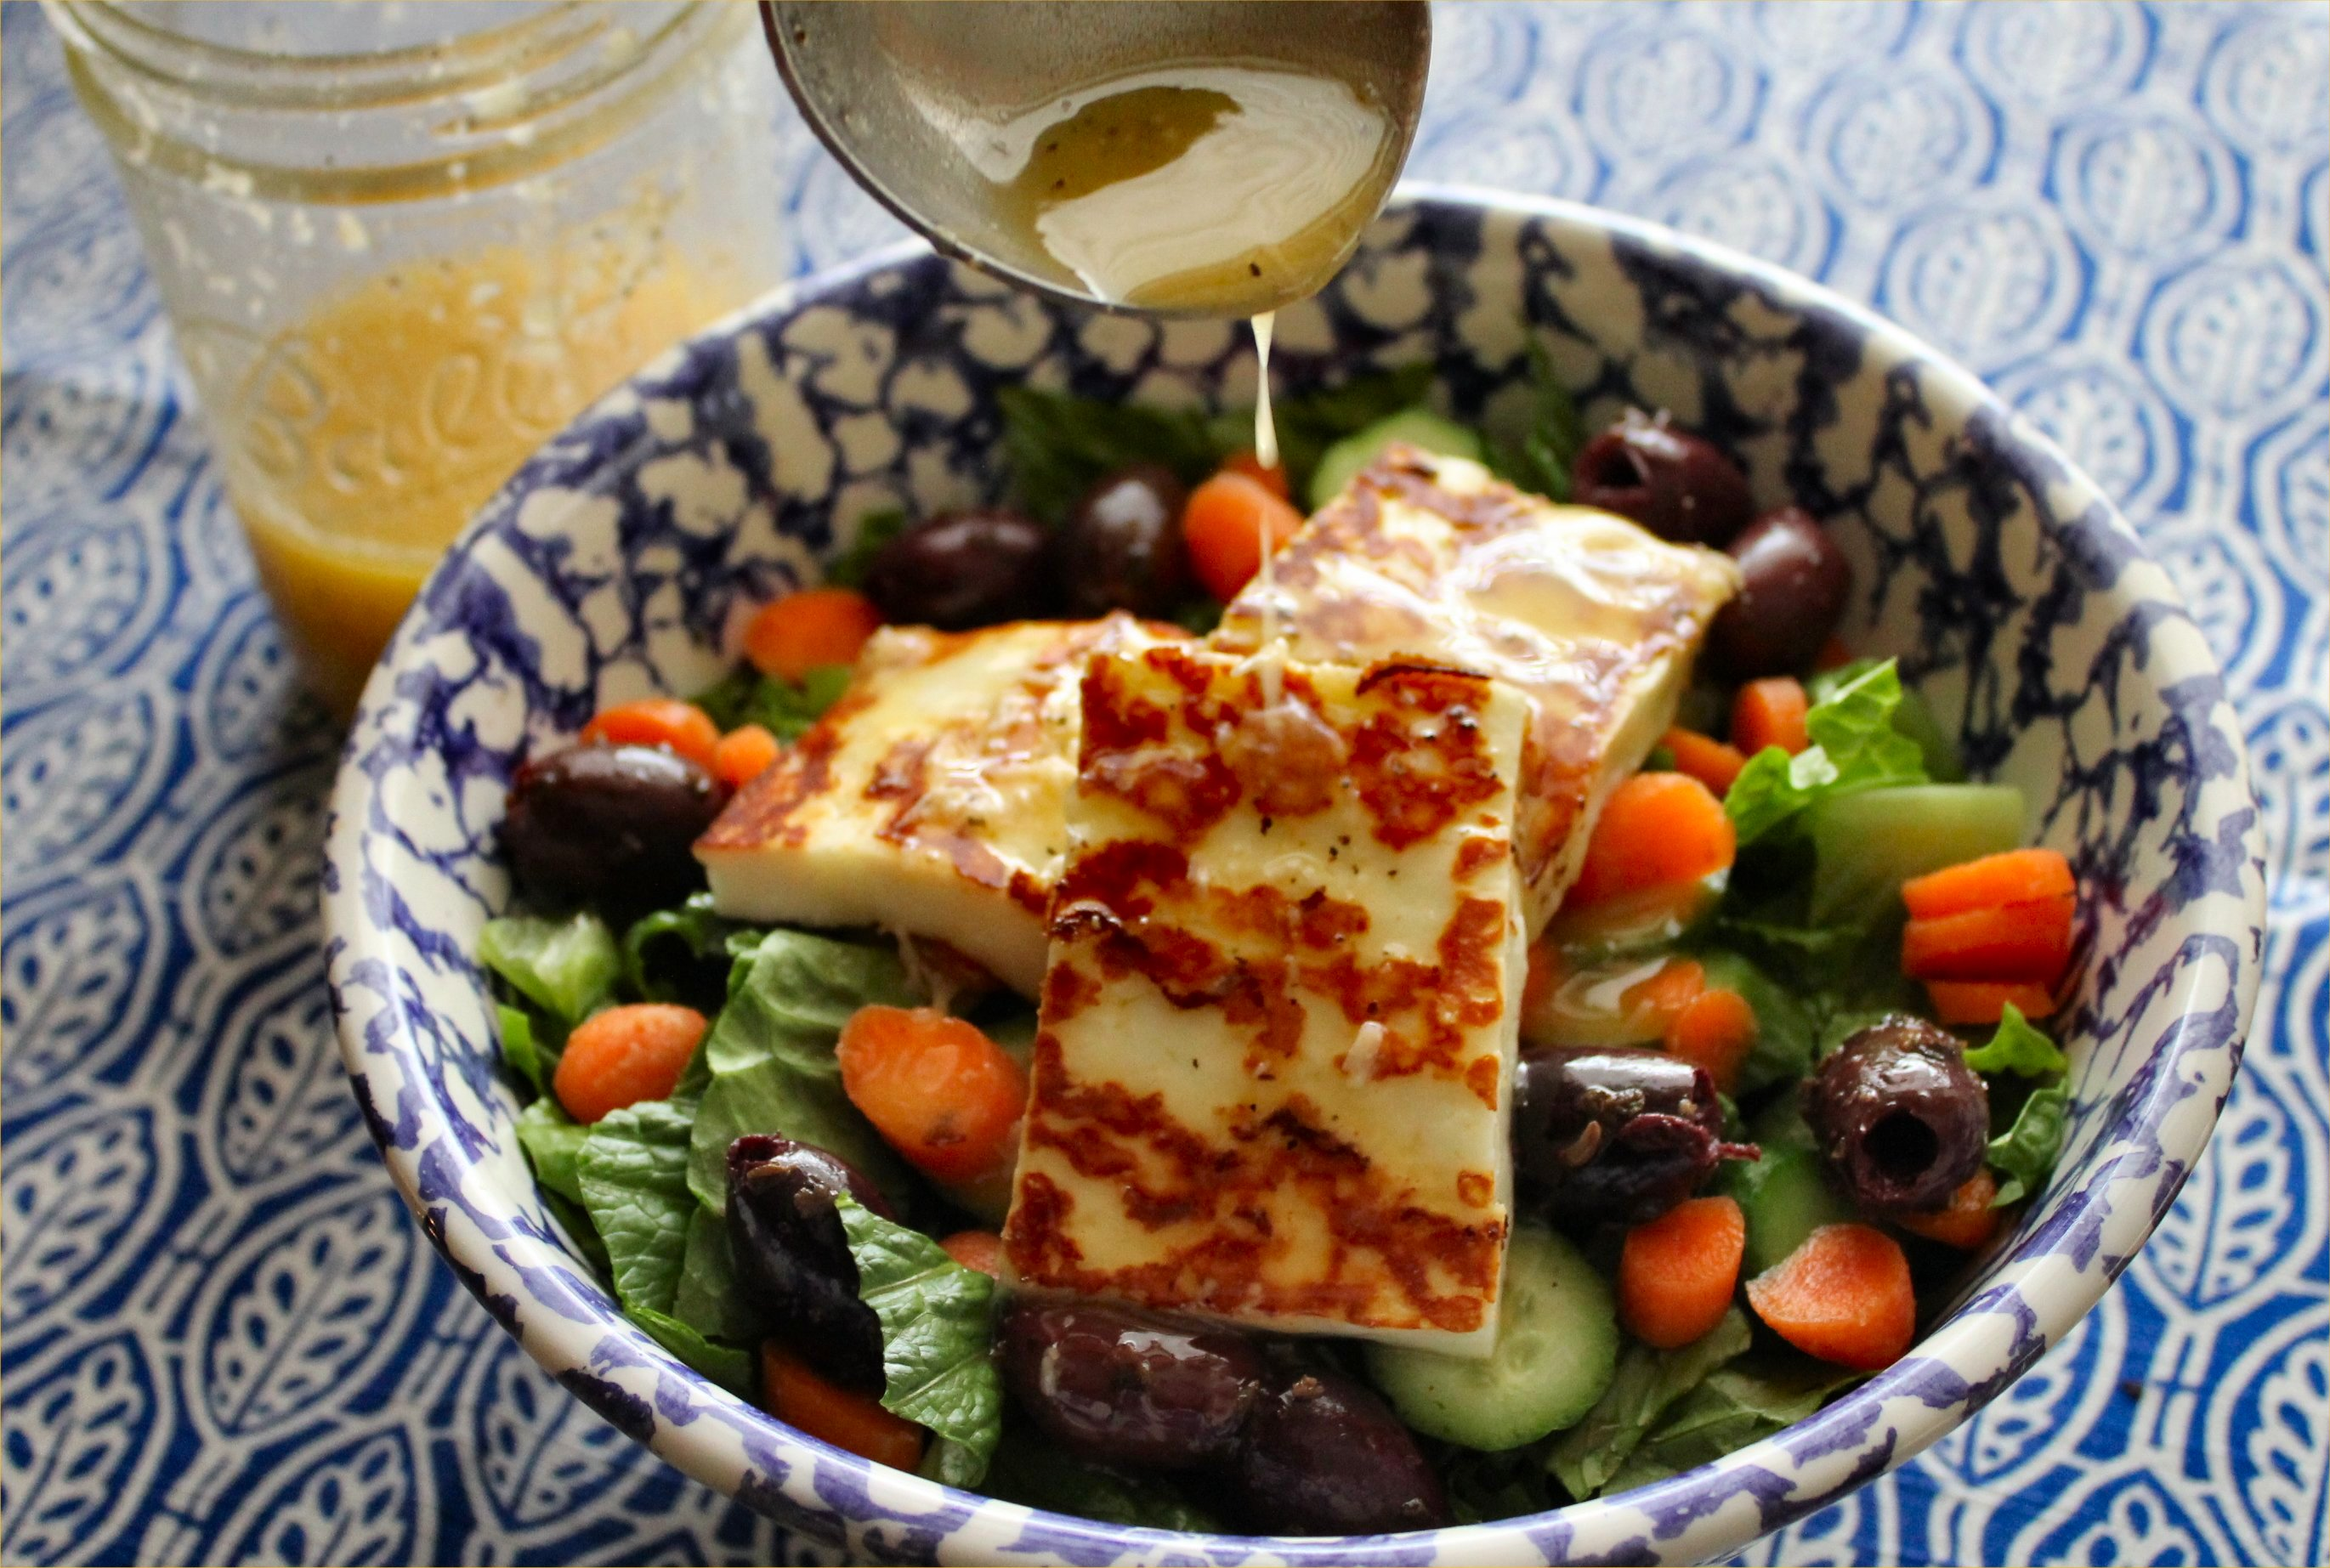 Aunt Trish's salad dressing over a green salad & grilled haloumi ...